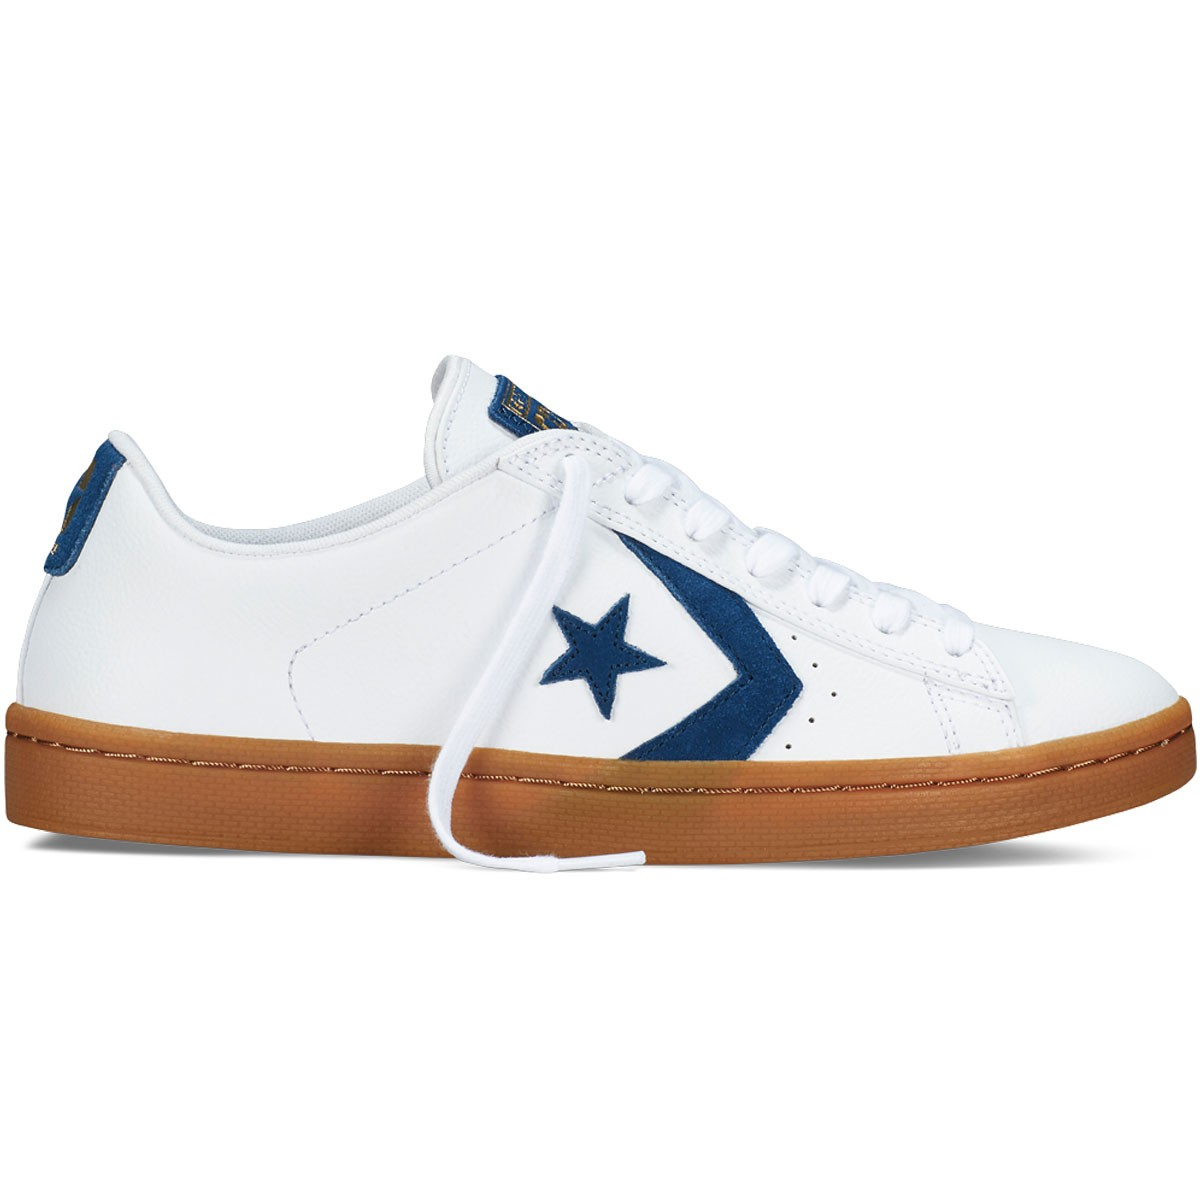 Converse Cons Pro Leather Skate Shoes